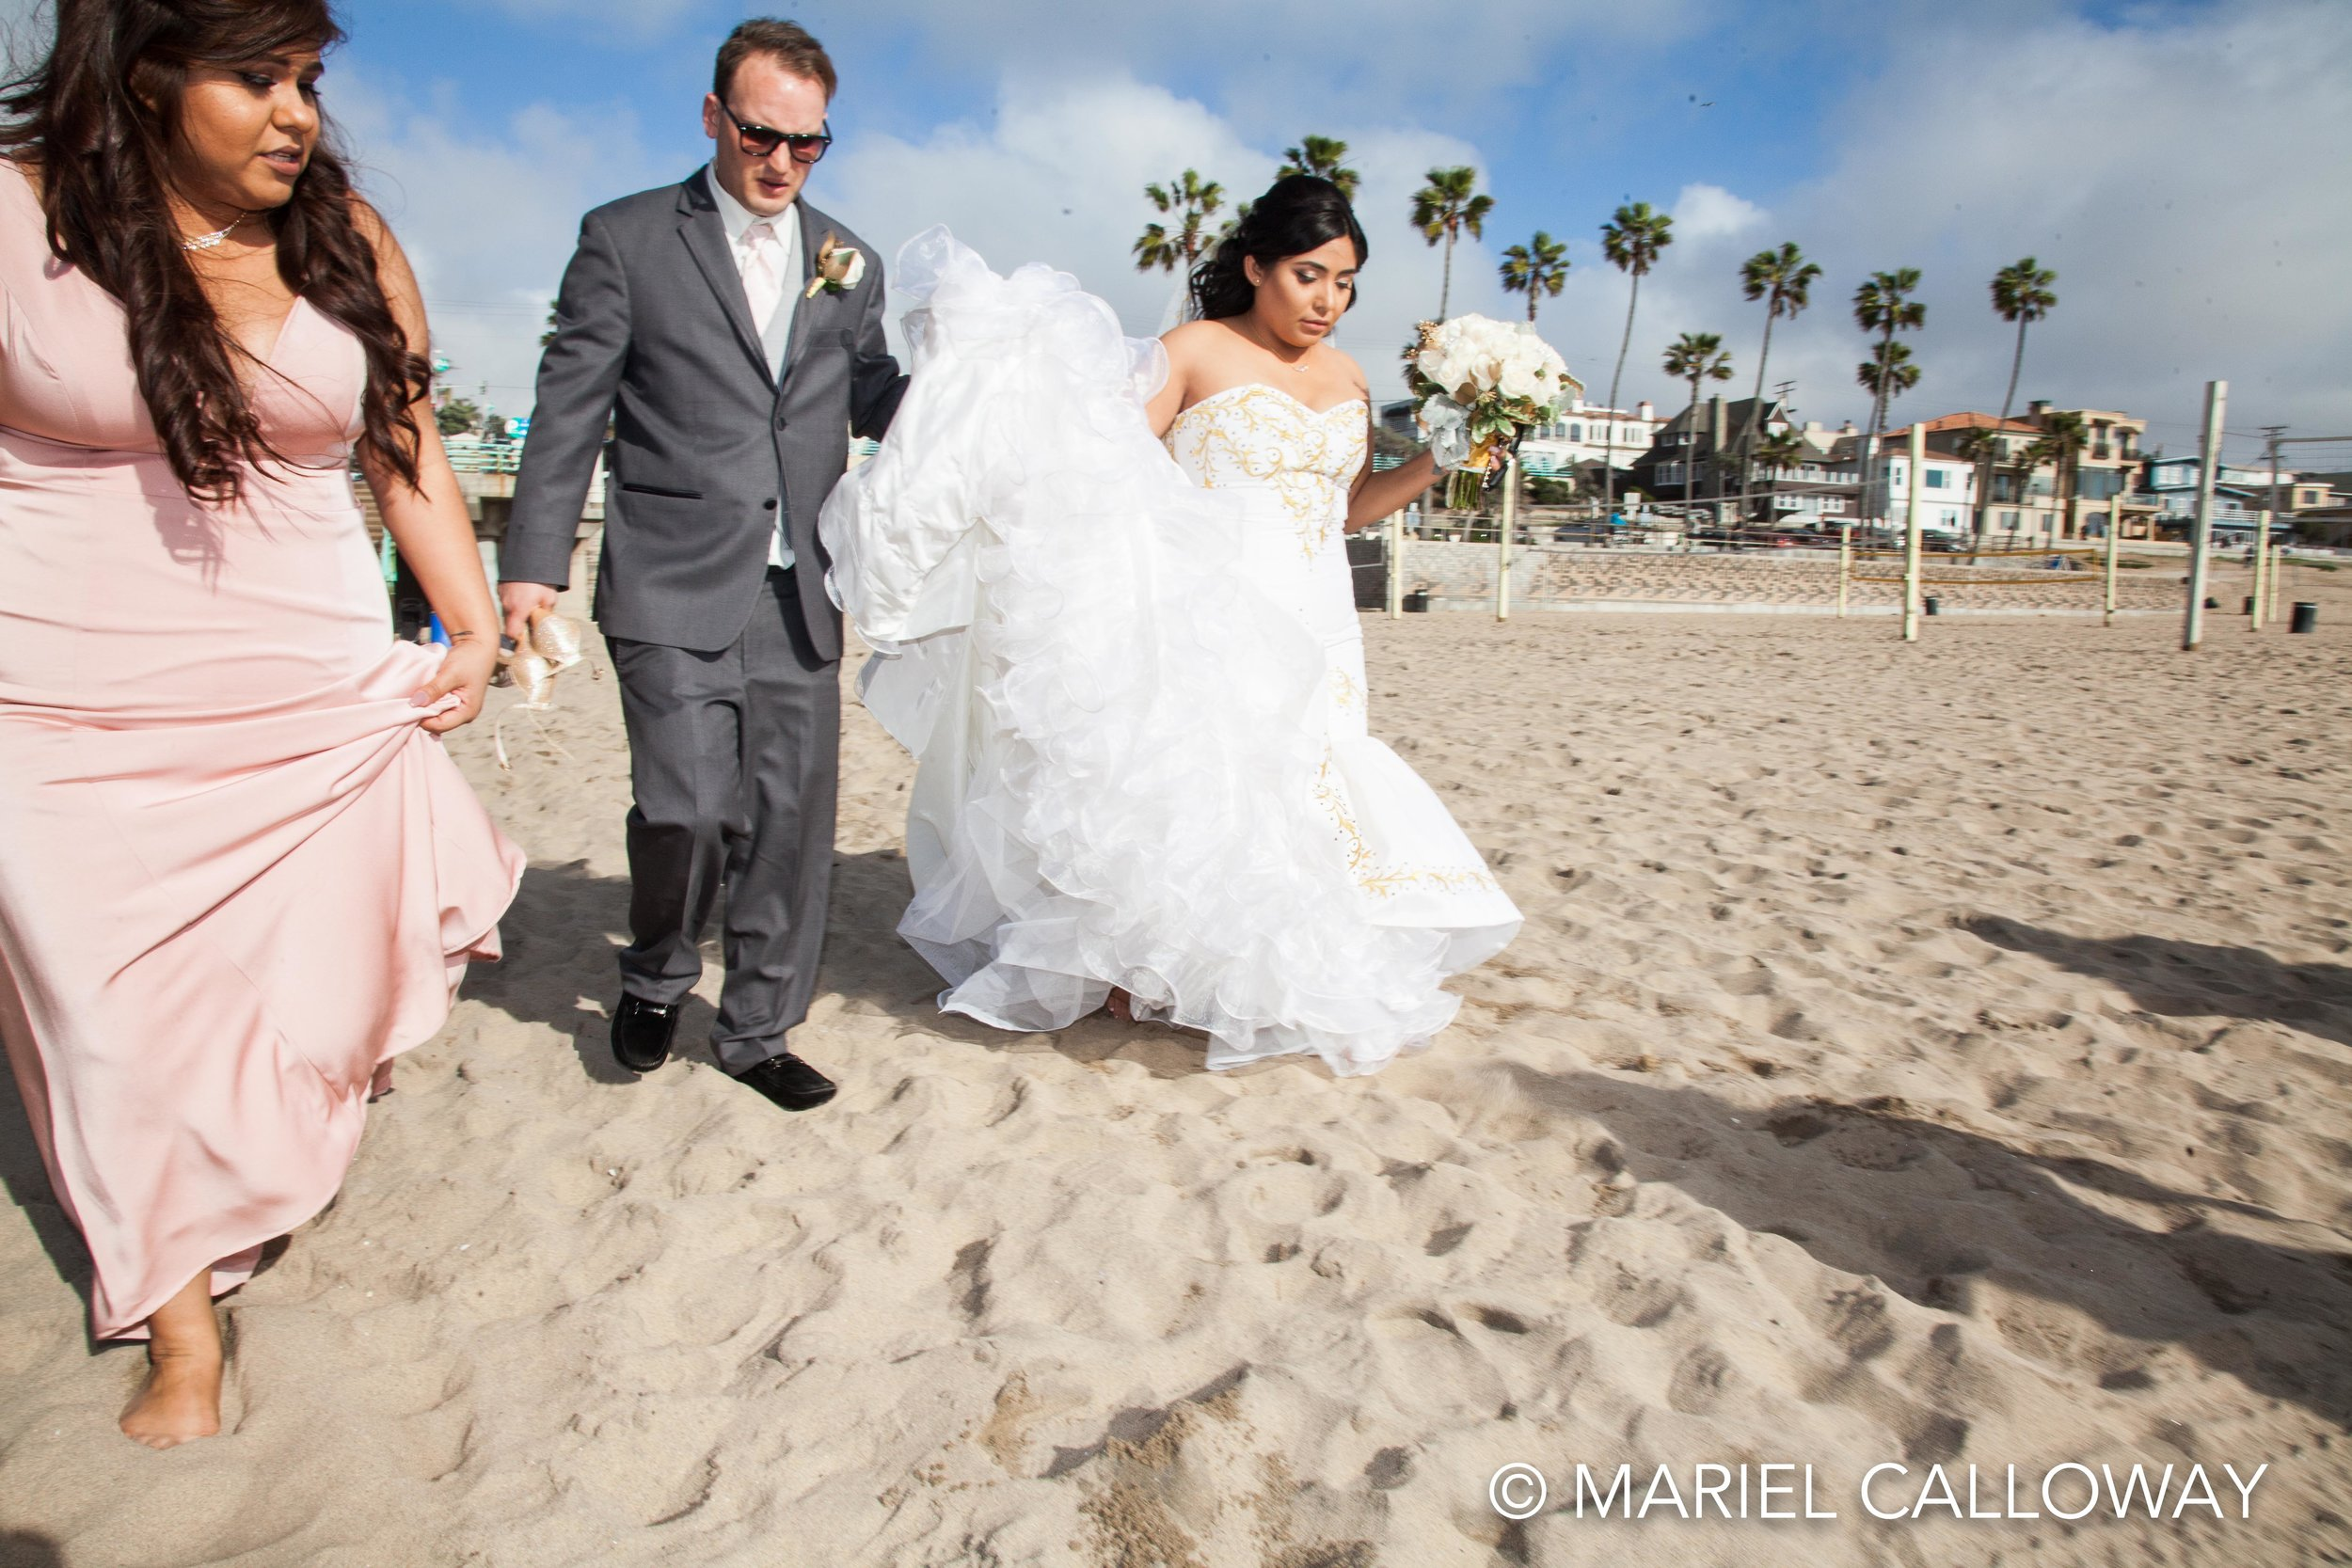 Mariel-Calloway-Los-Angeles-Wedding-Photography-Rossi-52.jpg